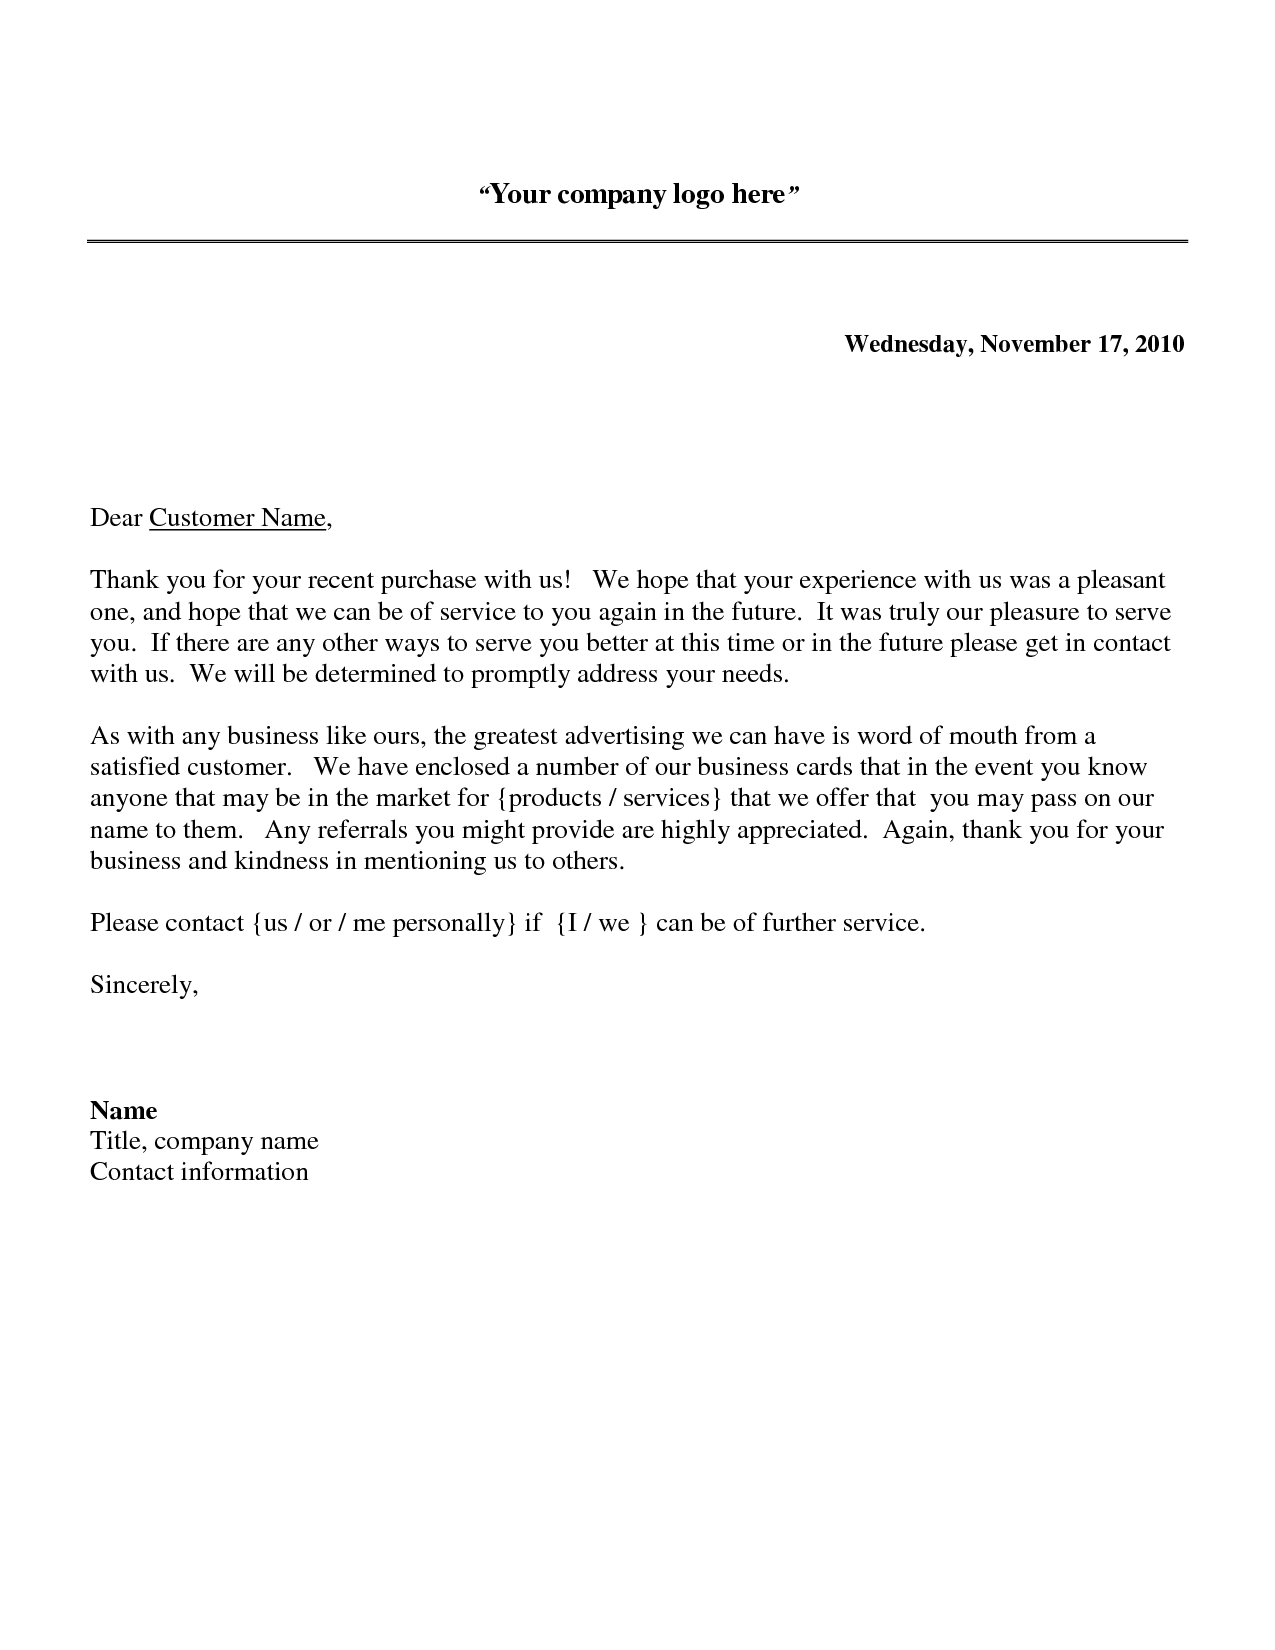 Sample thank you for your business letters – 7 samples, examples.